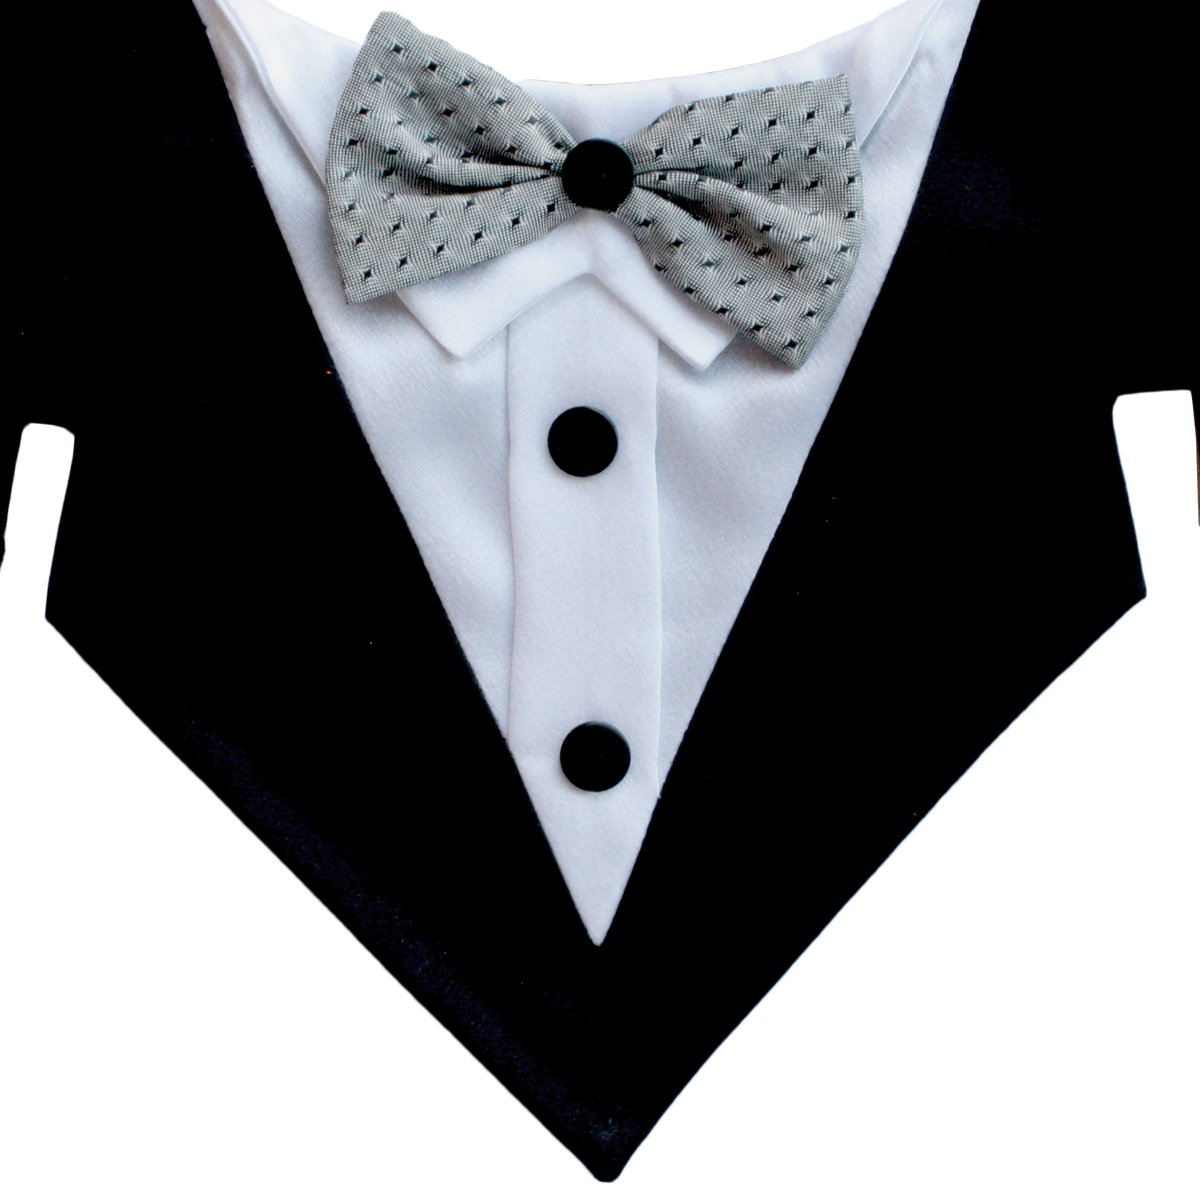 Dracula Formal Dog Bandana with Silver Bow Tie (Large)